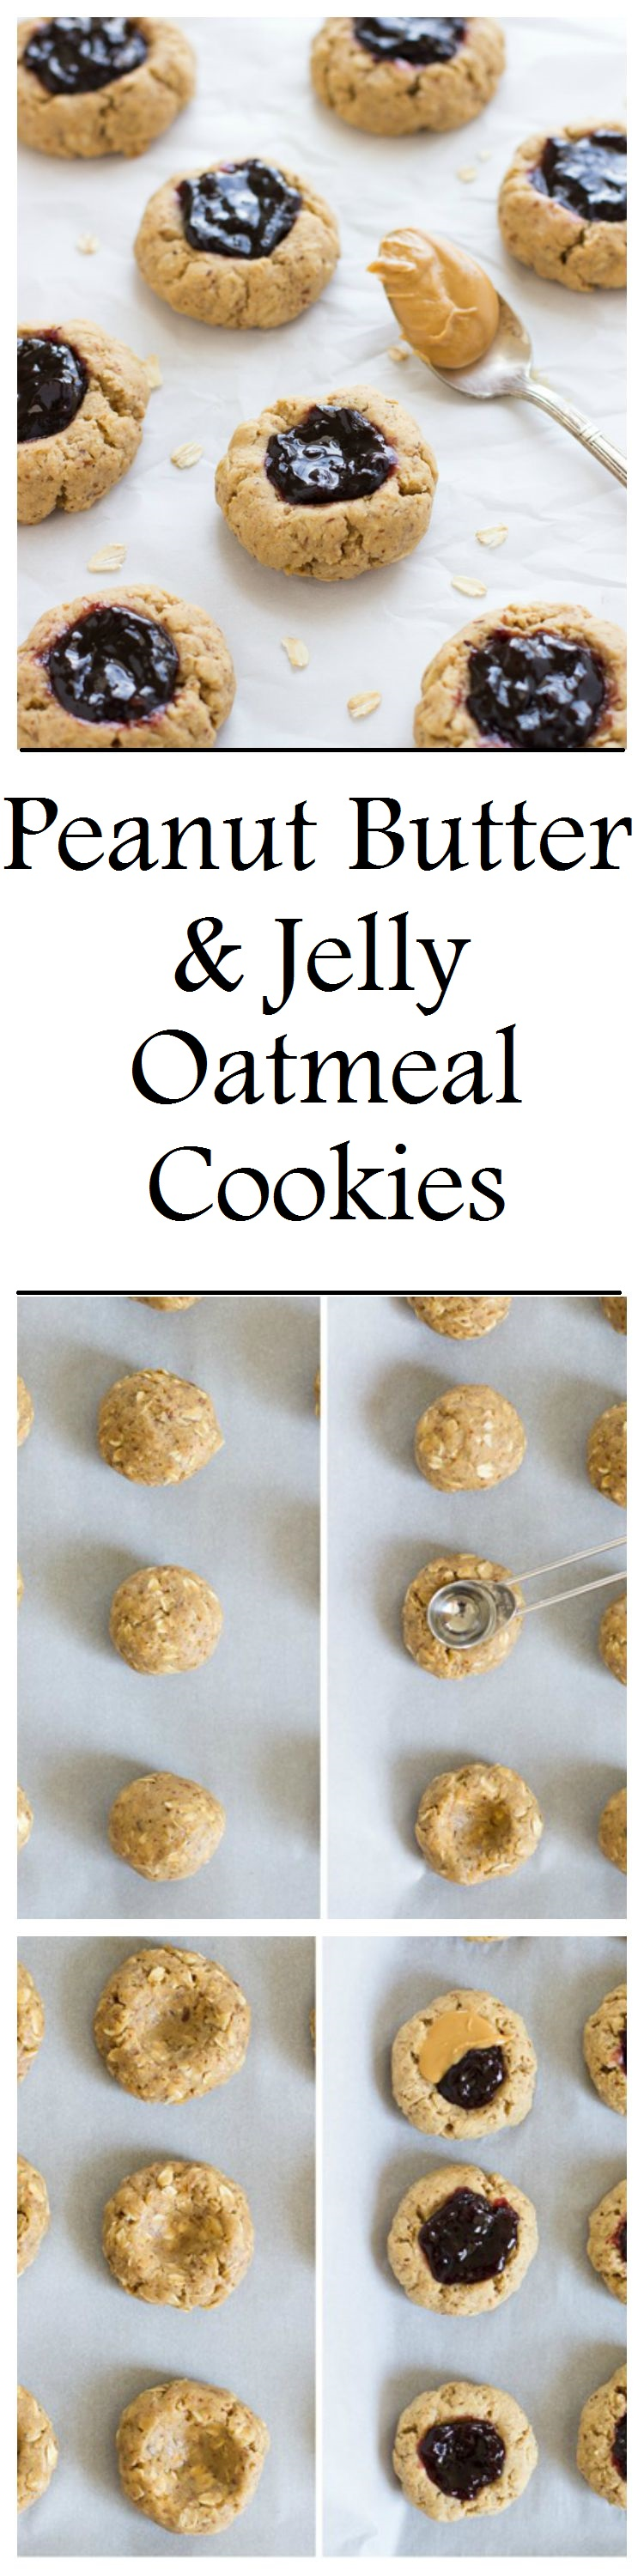 Healthy Peanut Butter & Jelly Oatmeal Cookies- a fun and healthy treat inspired by the childhood classic! #glutenfree #vegan and #refinedsugarfree